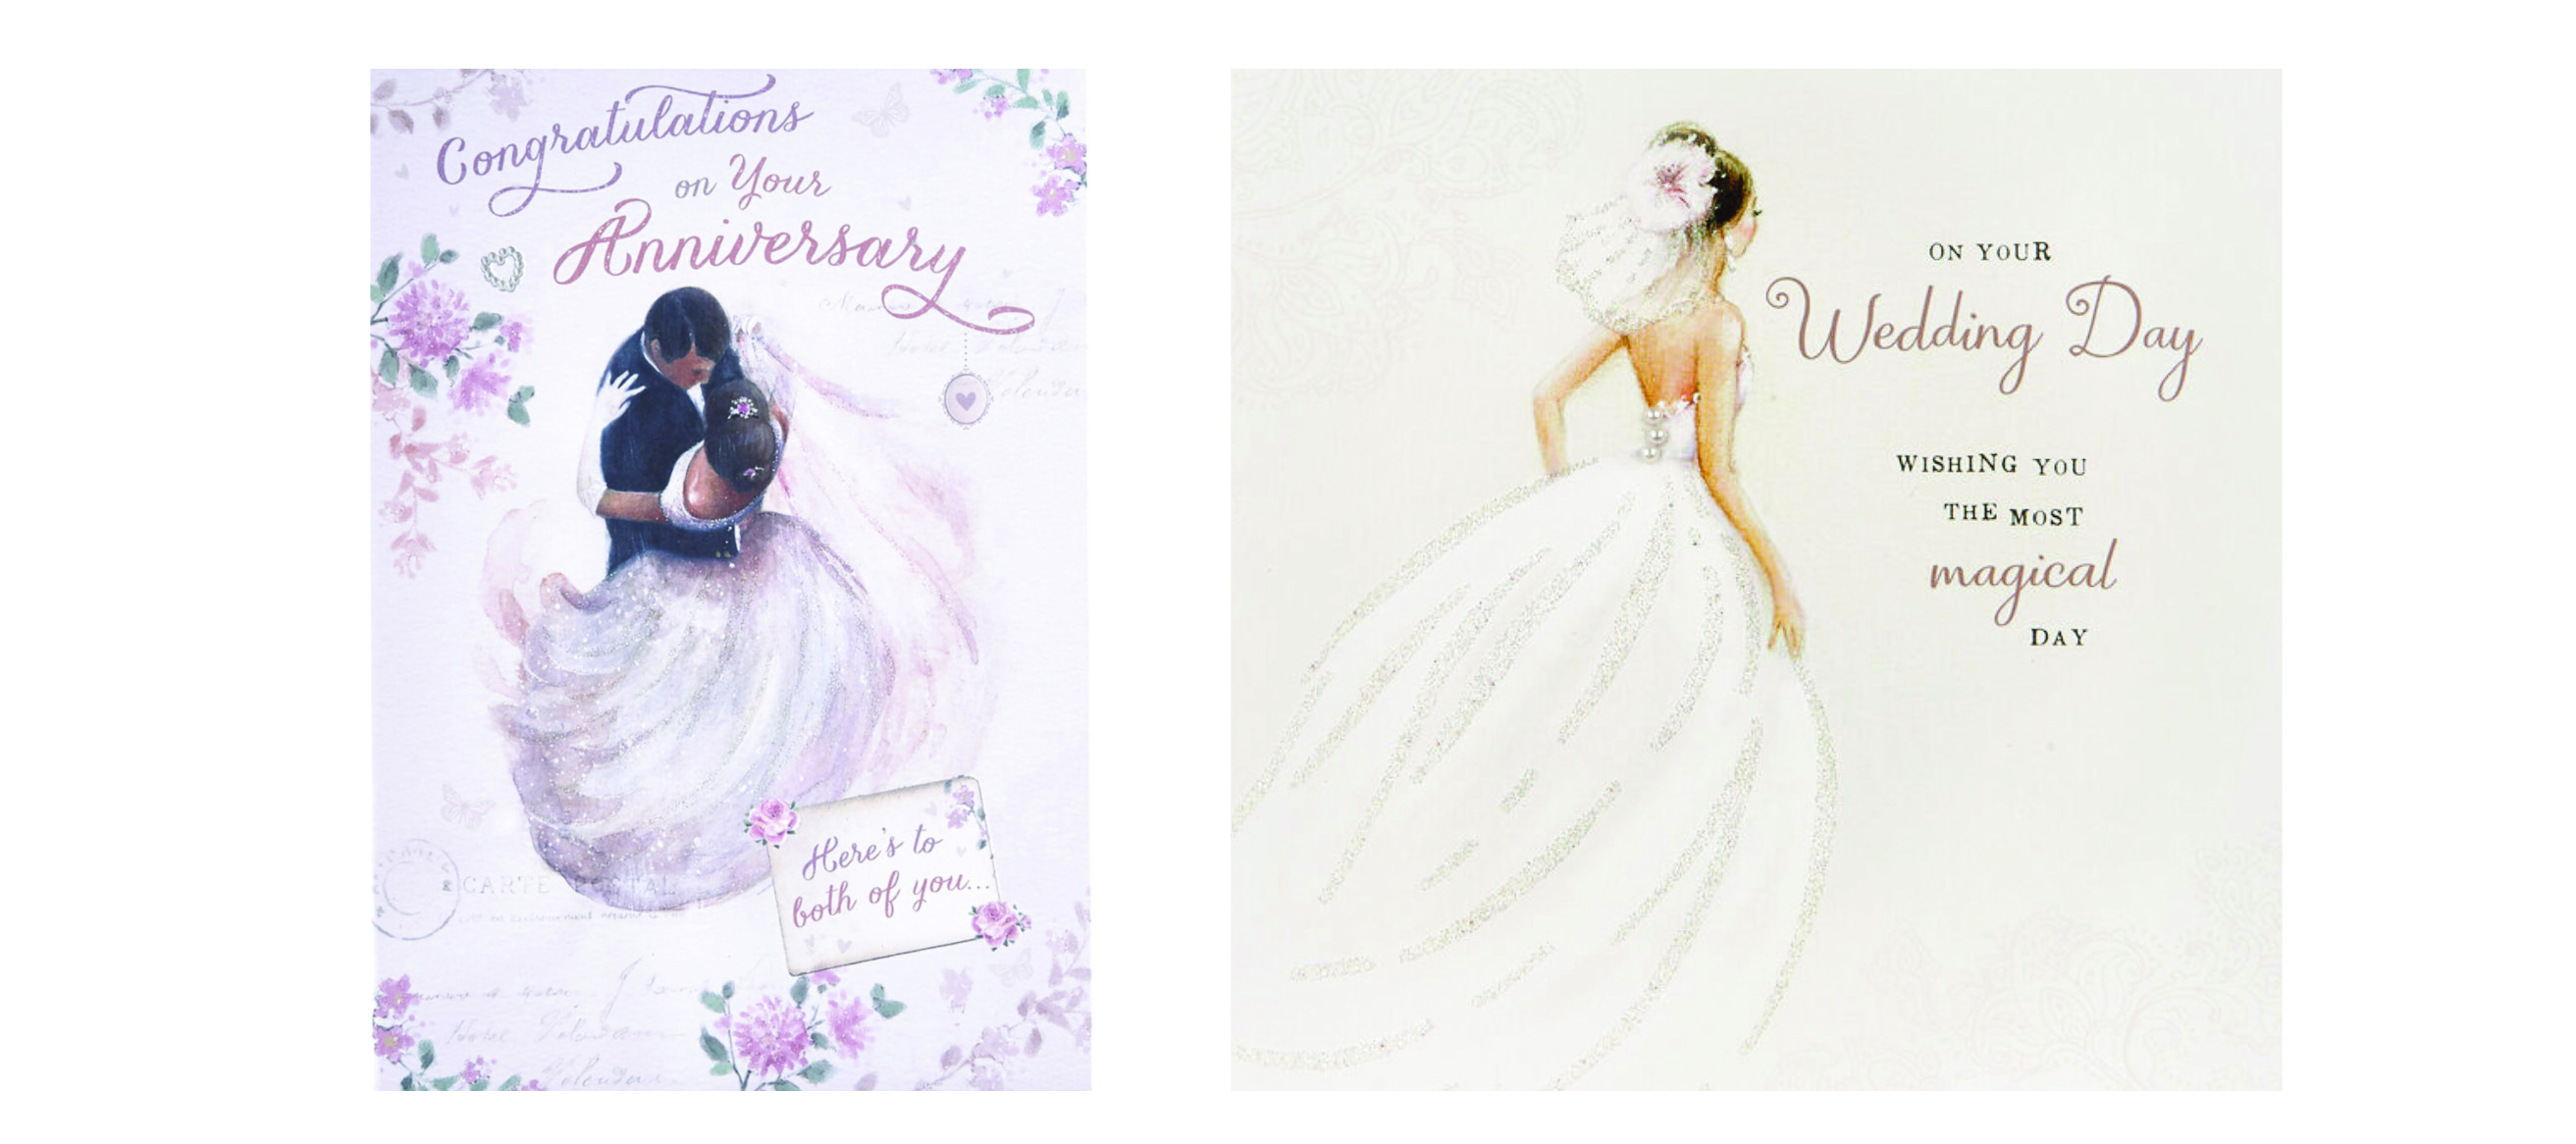 Above: Weddings is one area where it is most likely to feature figurative illustrations. Card Factory recognises it needs to include more skin tones.